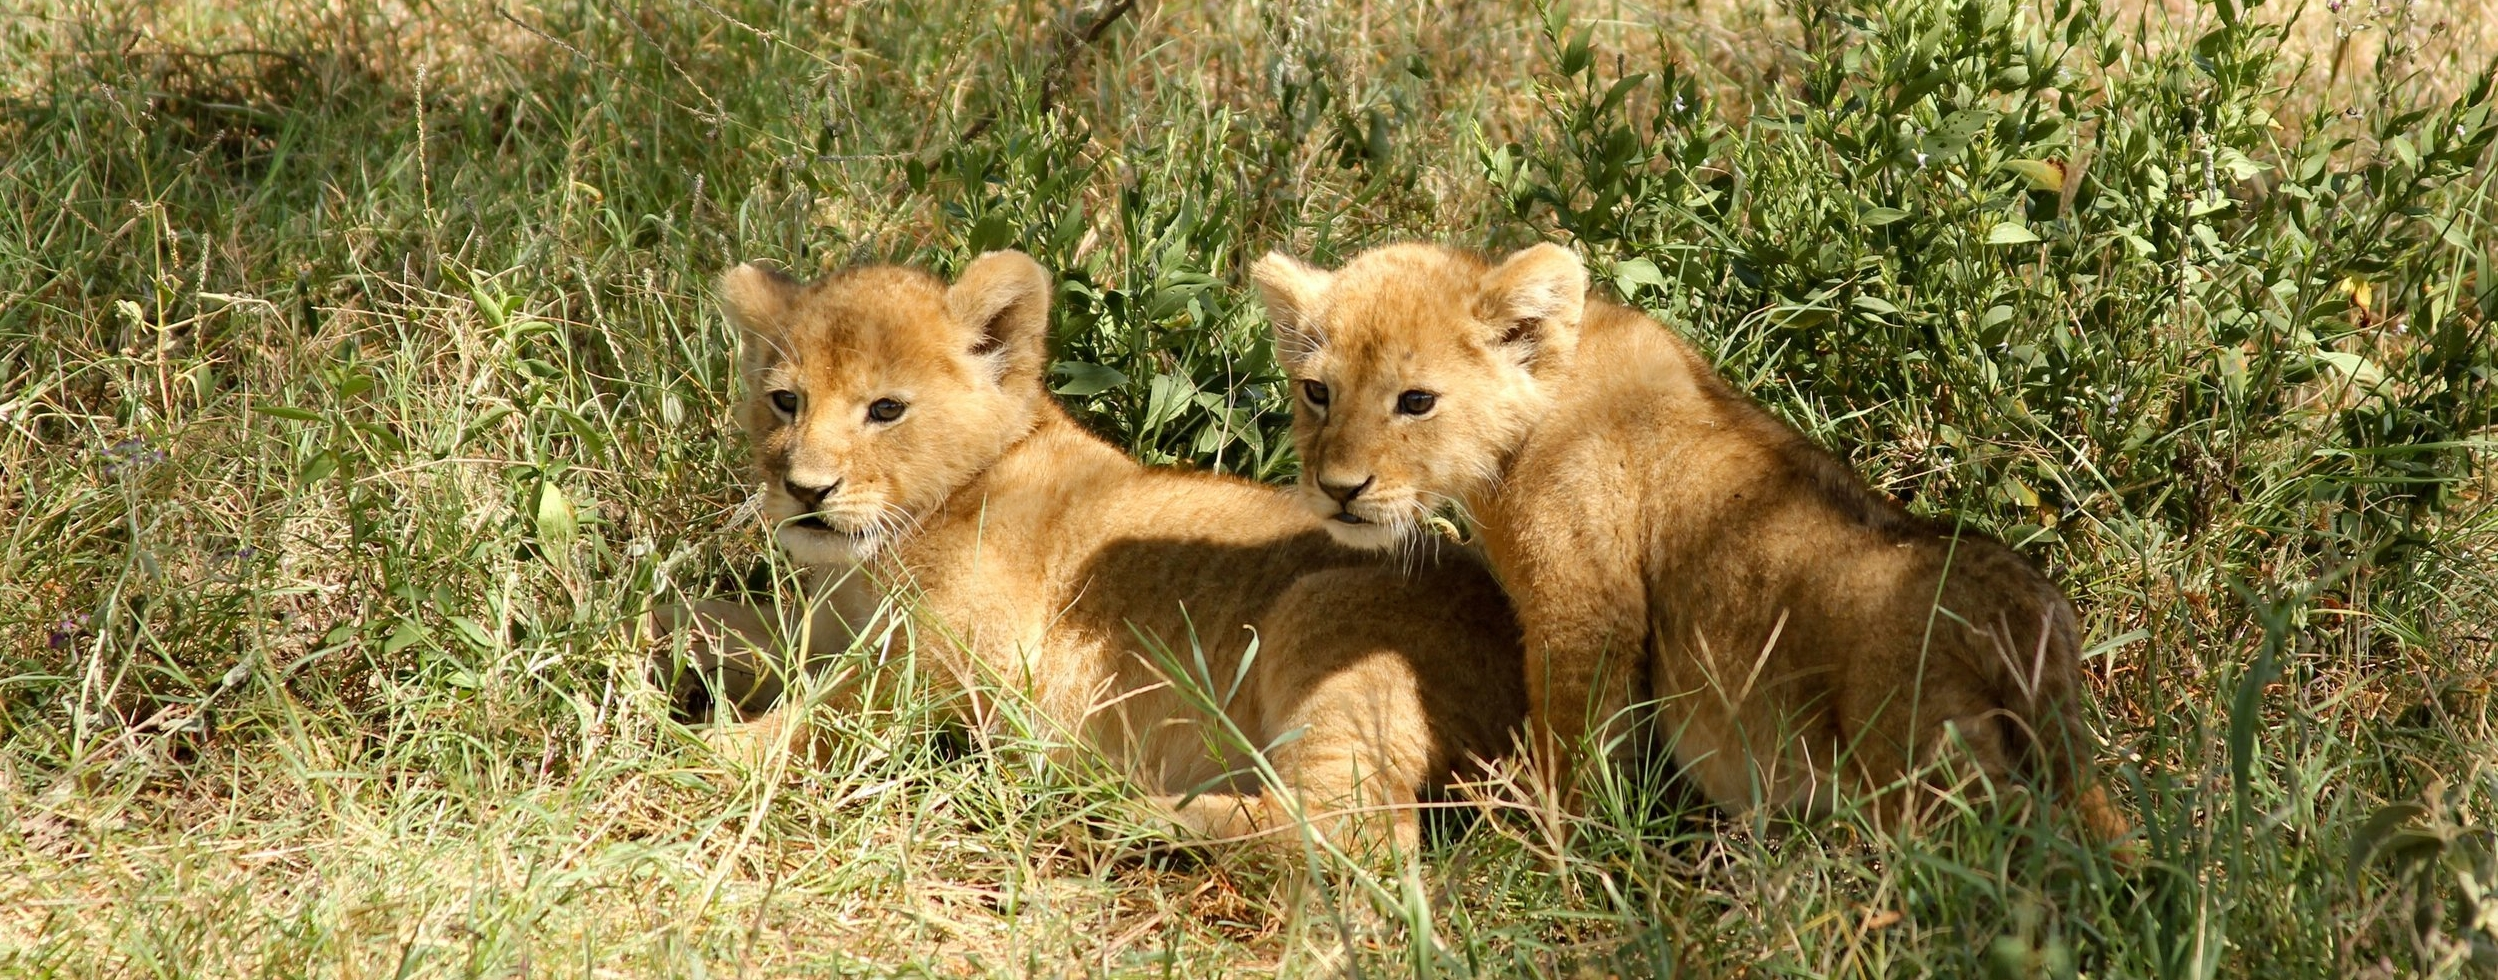 Copycats in the wild by timon studler